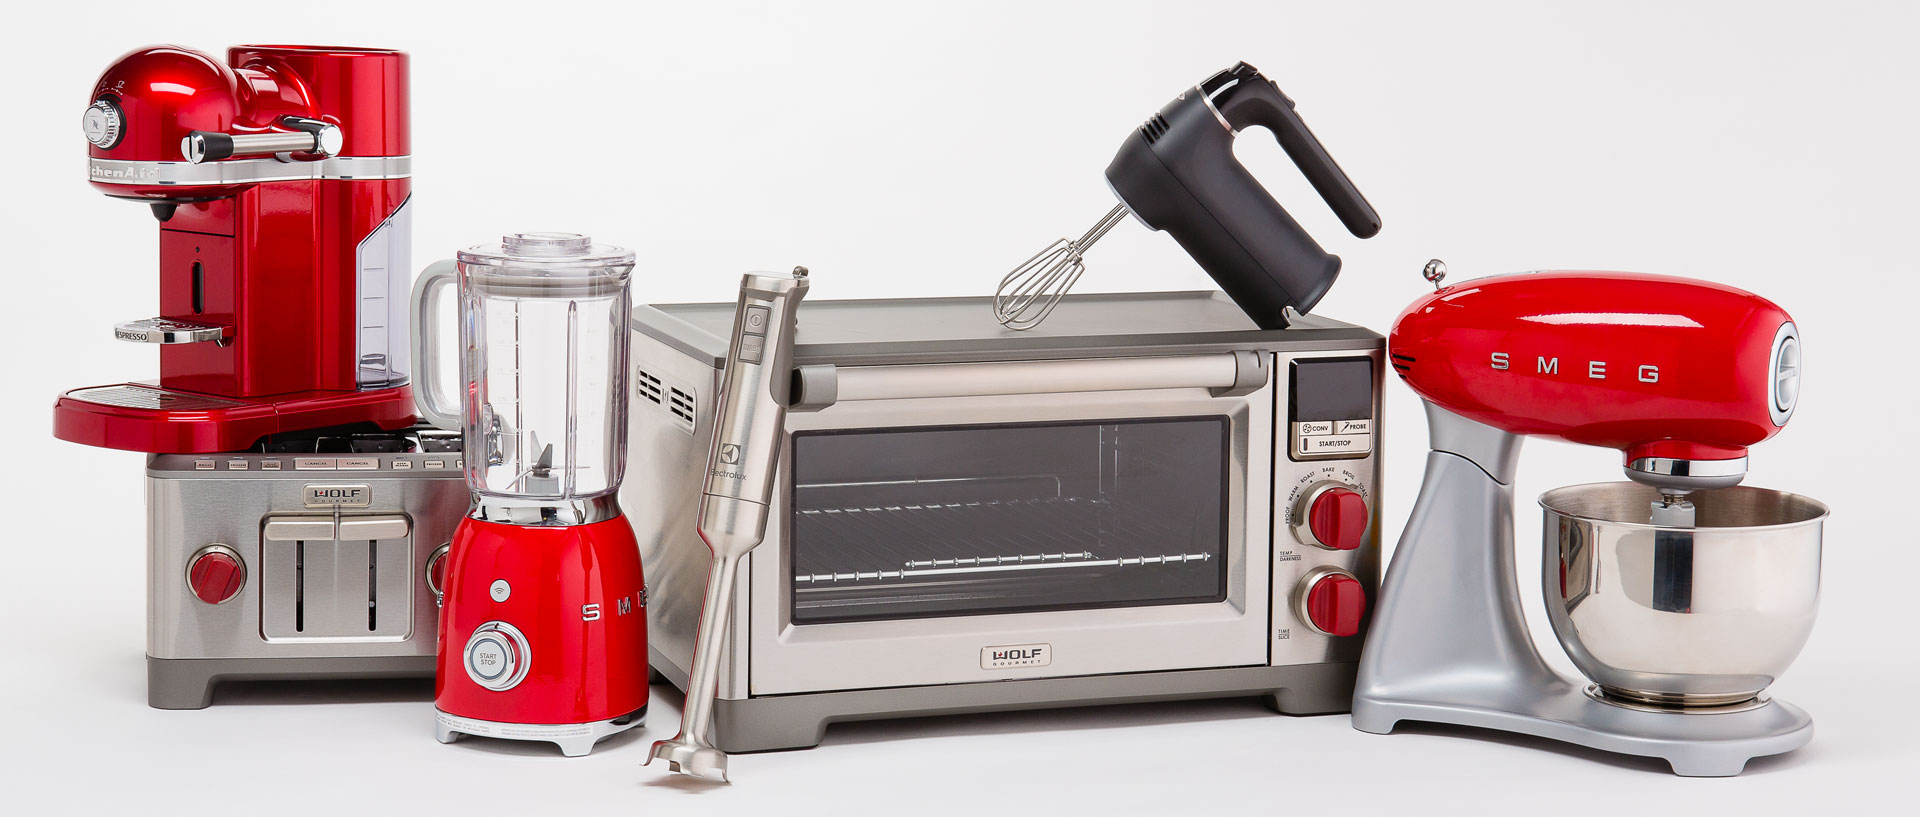 small kitchen appliances racks ikea appliance suites give kitchens a sweet look consumer reports cookie preference center